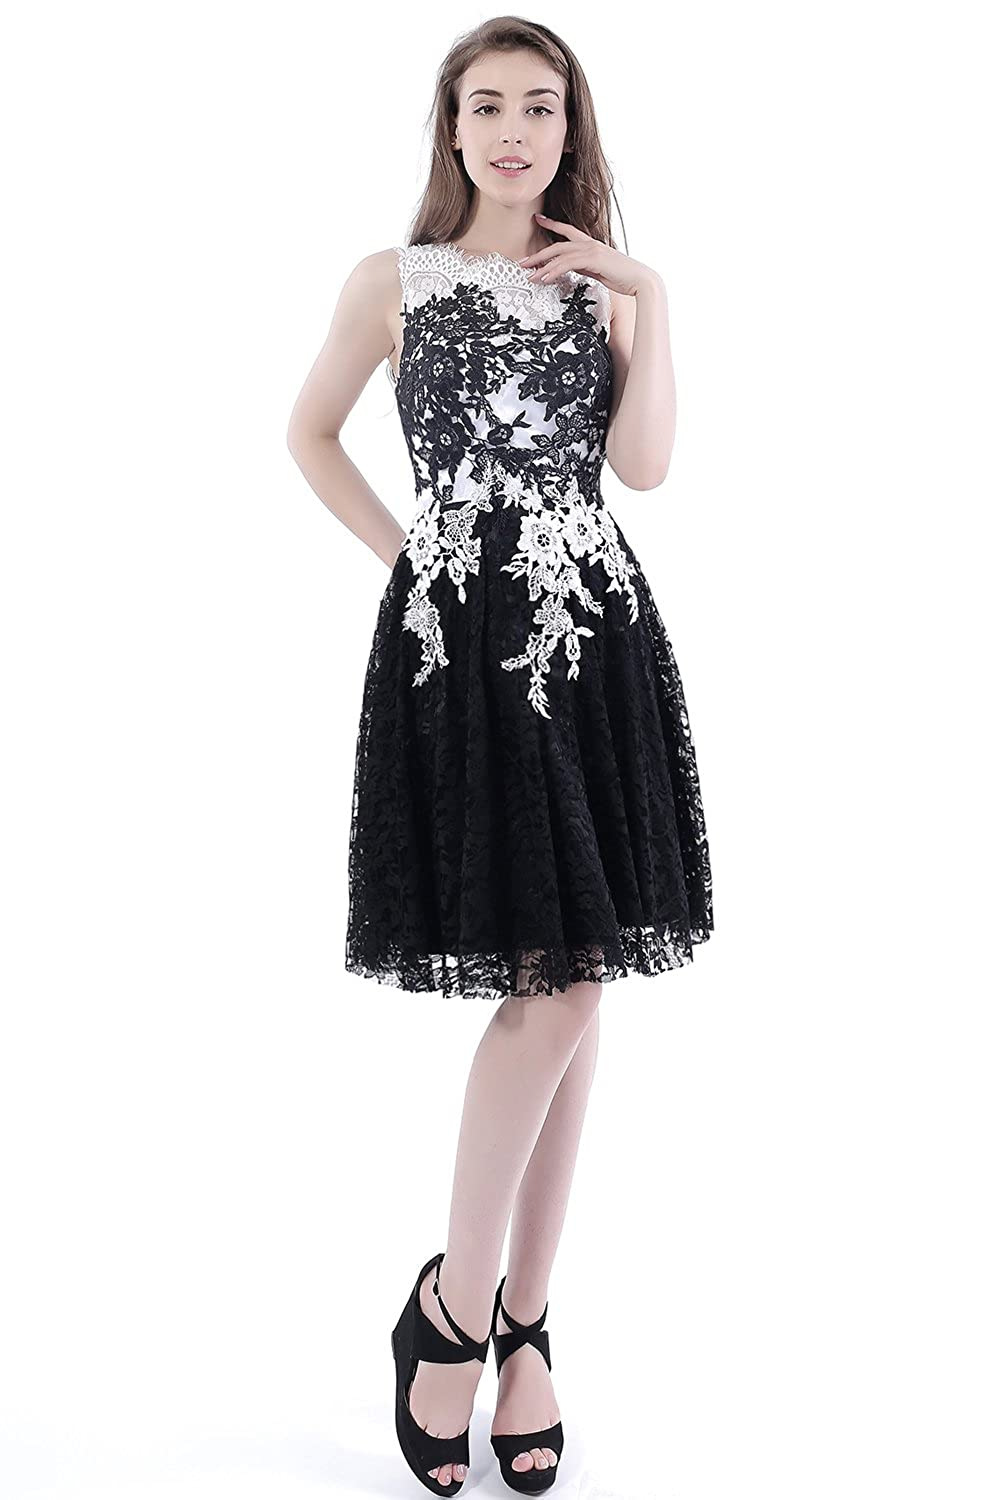 Babyonlinedress Sexy Lace Applique Short Cocktail Homecoming Dress for Junior